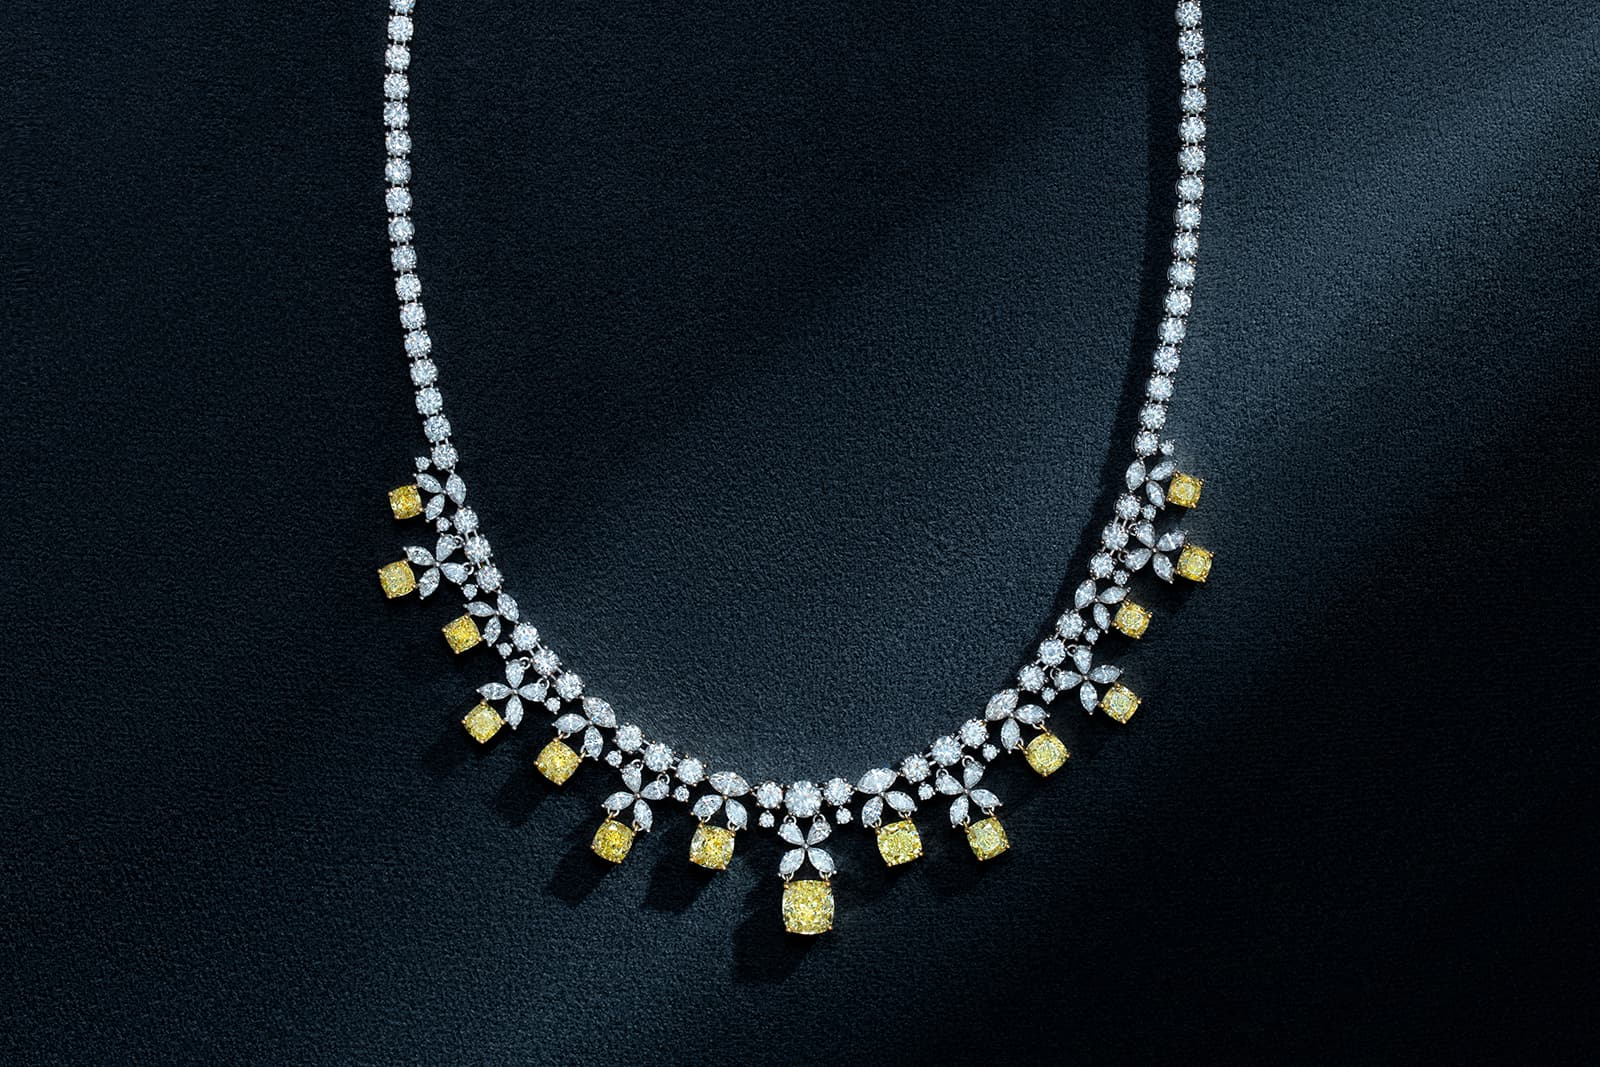 Darvol necklace with yellow and colourless diamonds